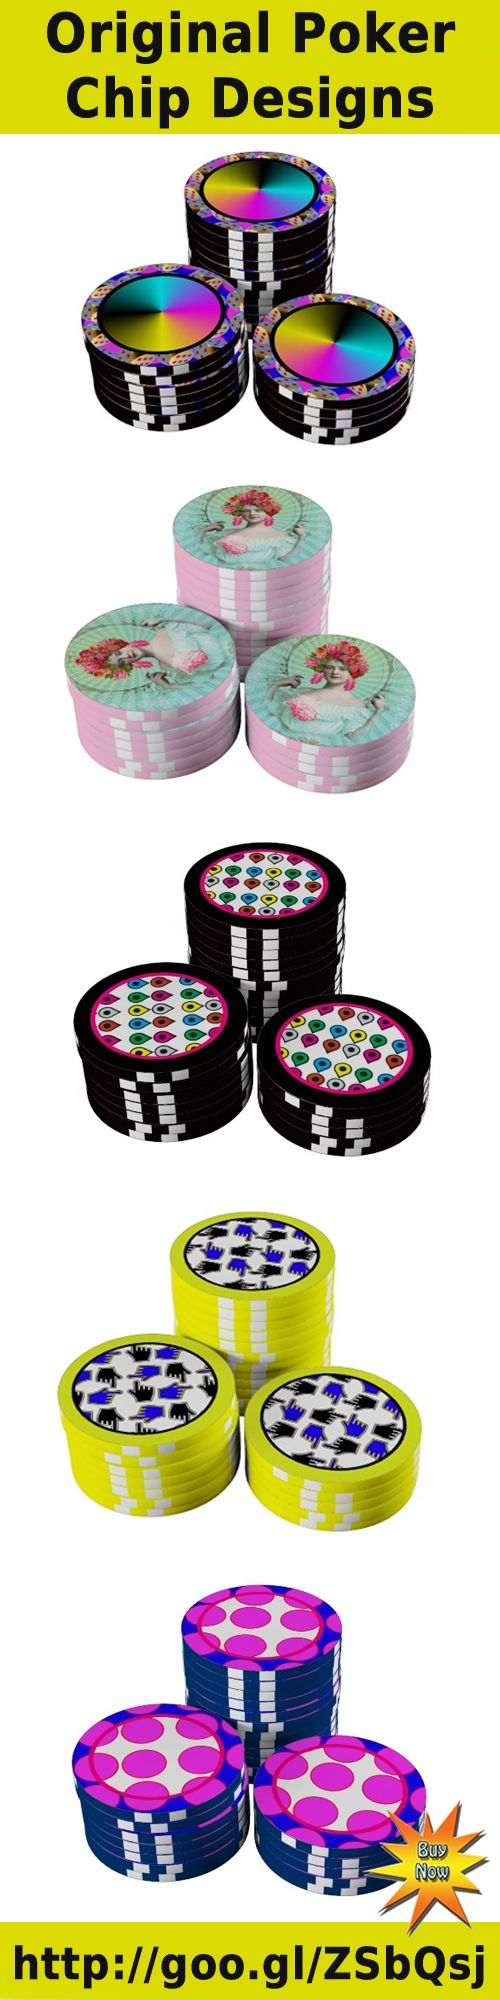 Zazzle t shirt design template - Zazzle T Shirt Design Template Original Poker Chip Design Templates Just Easily Add Your Own Download